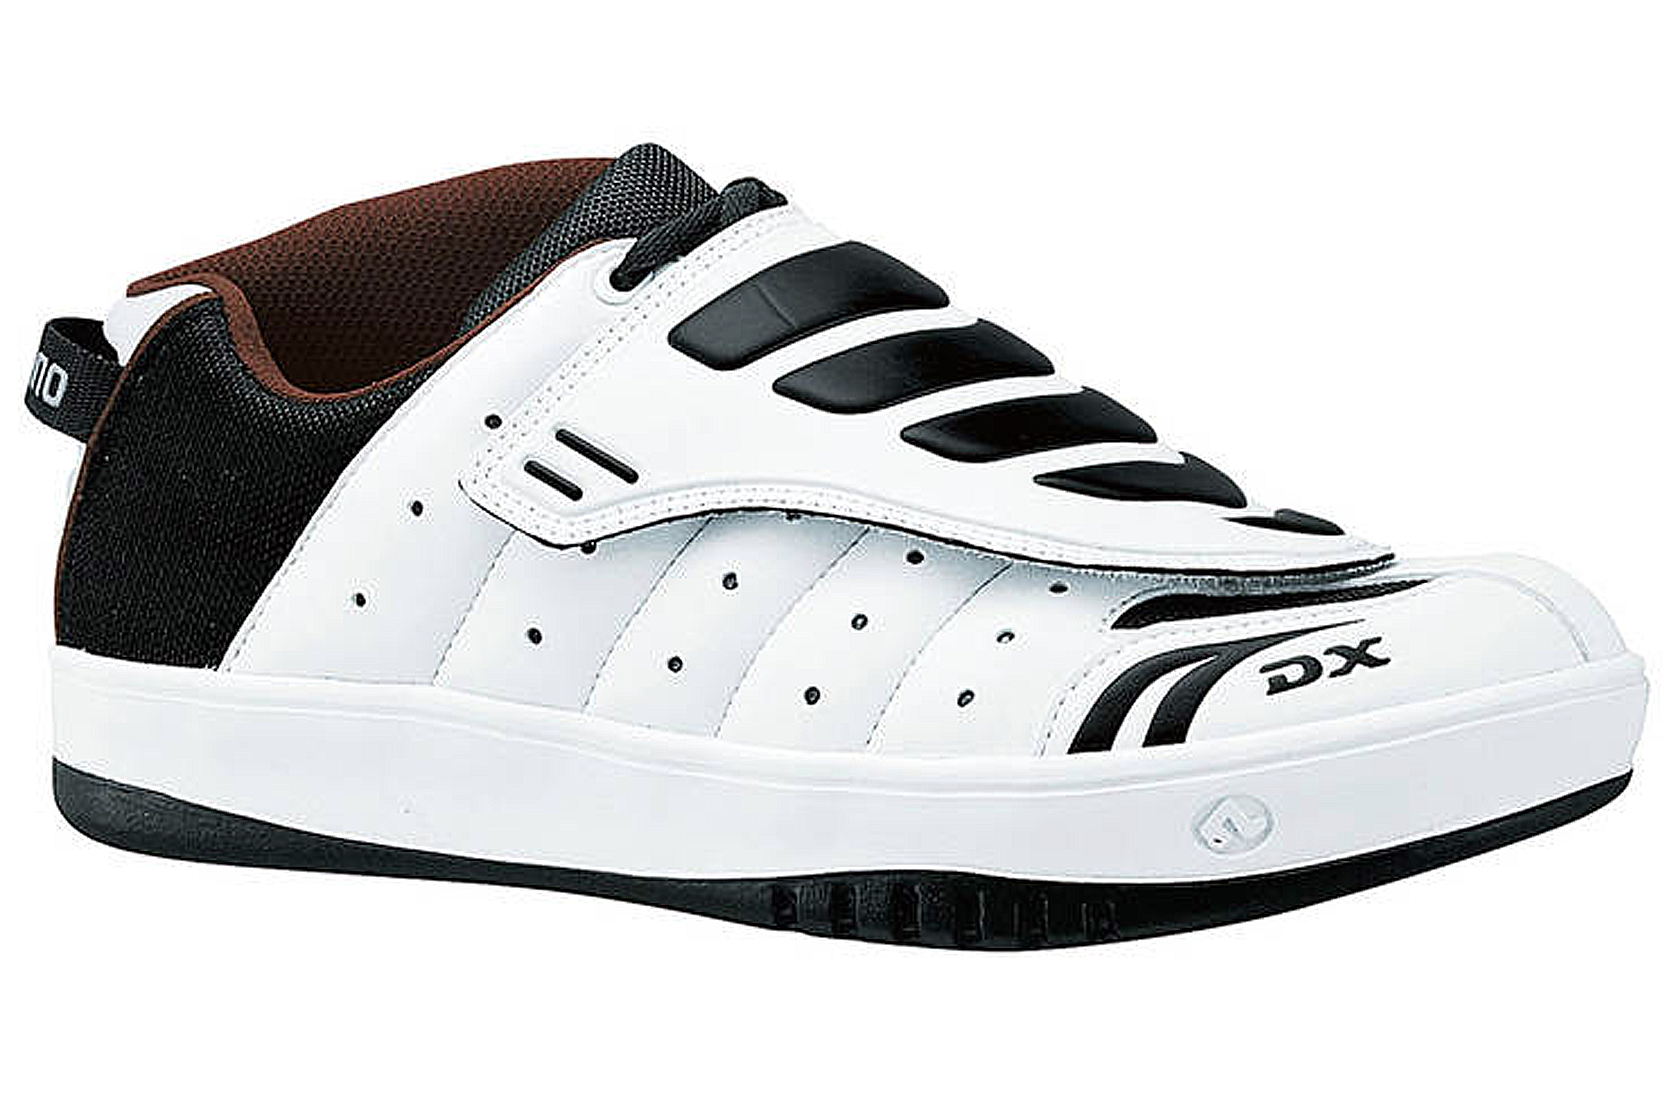 DesignApplause | Shimano mp66w dx spd shoes.